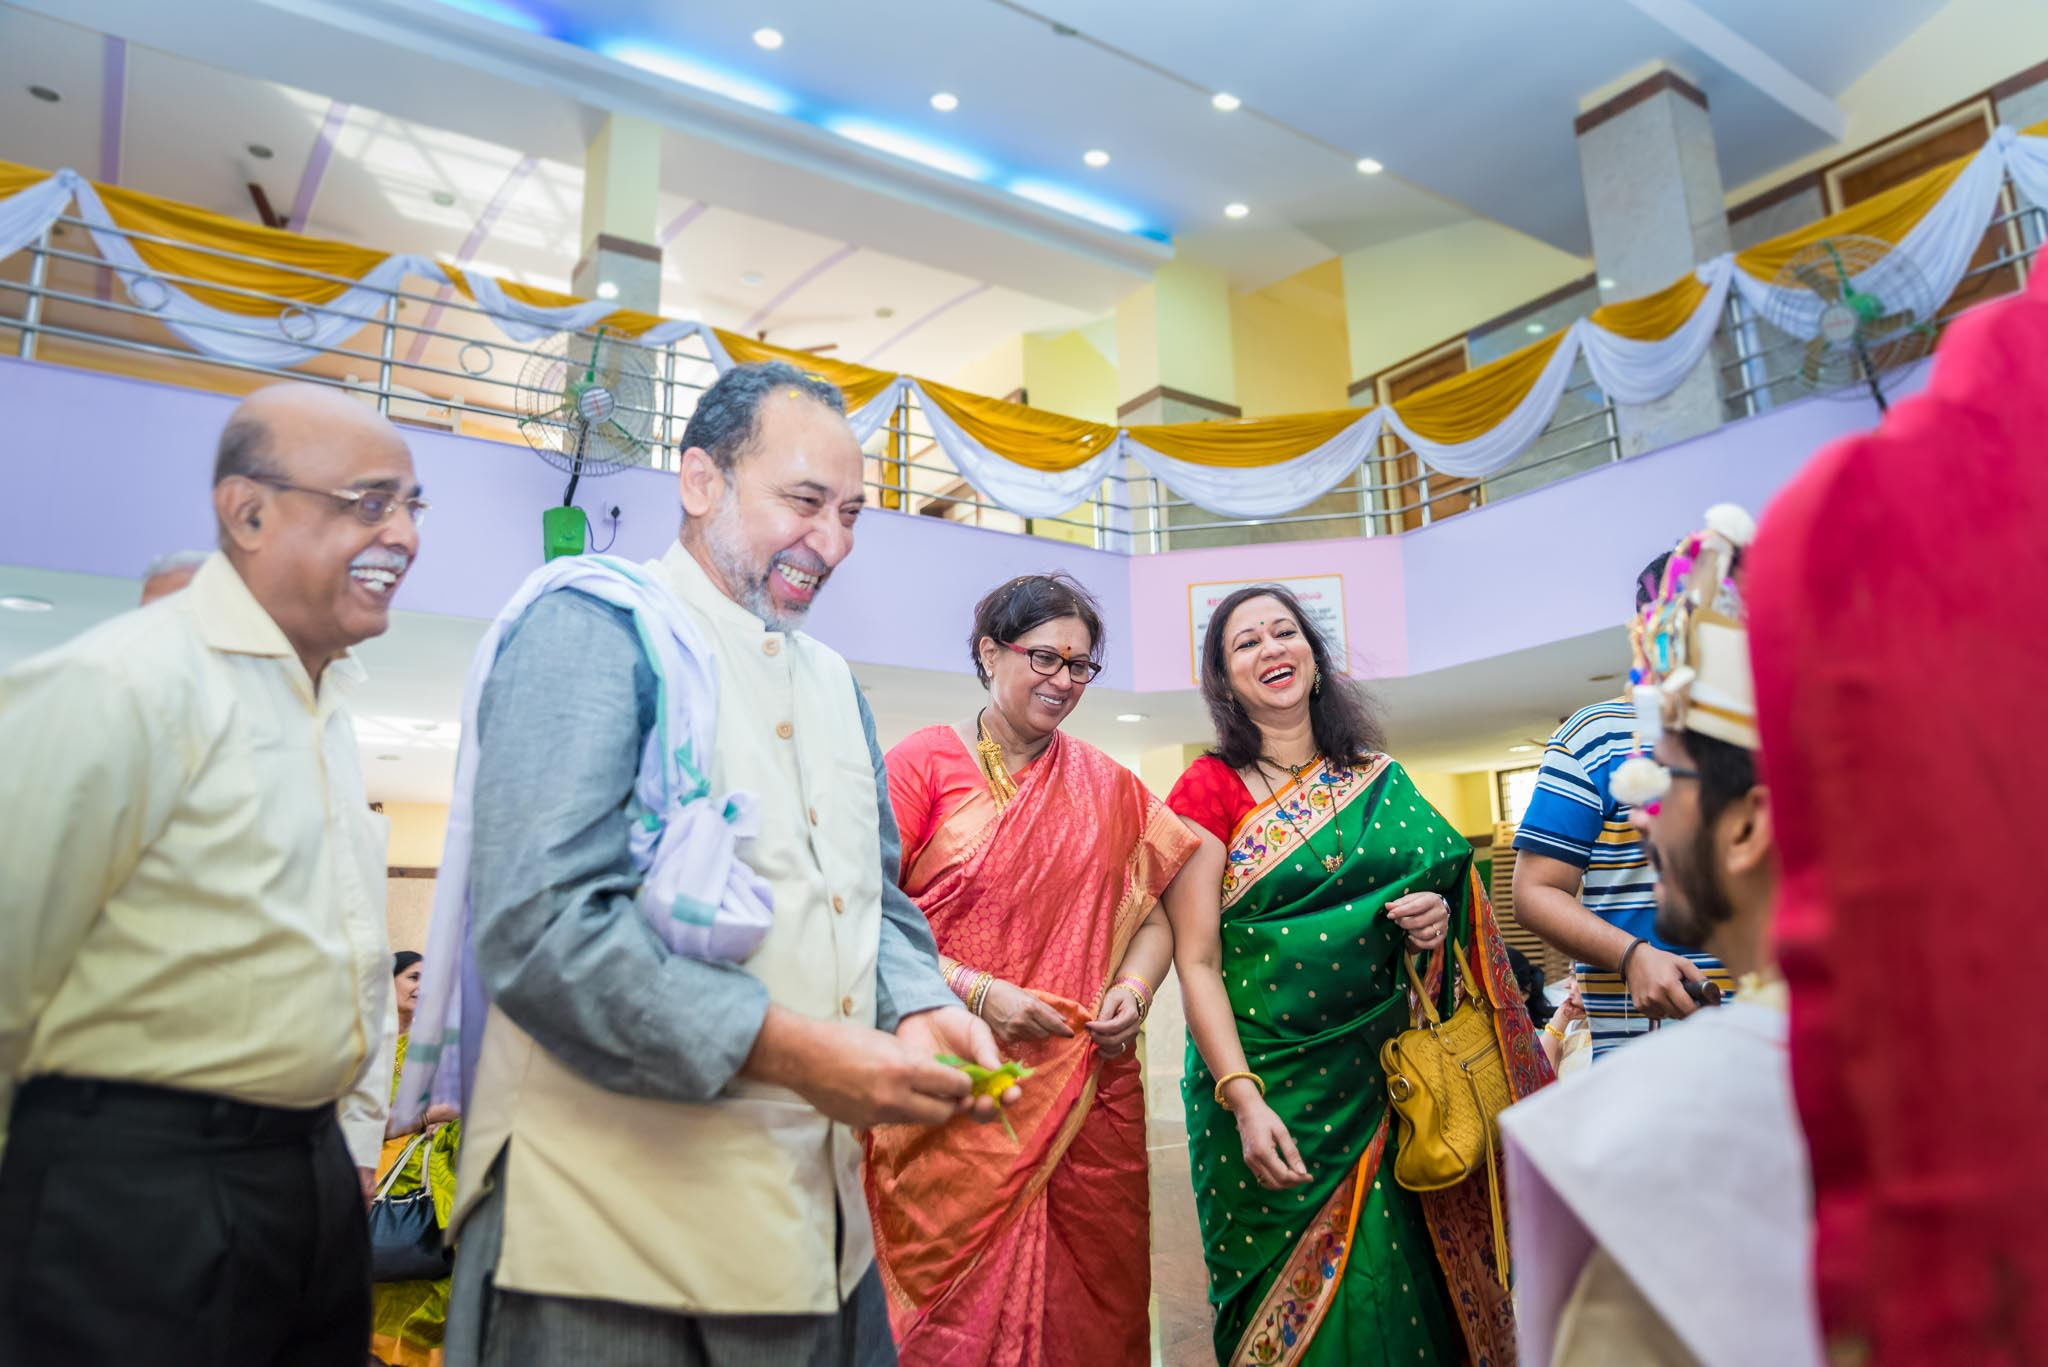 WhatKnot-Candid-Wedding-Photography-Mumbai-Bangalore-149